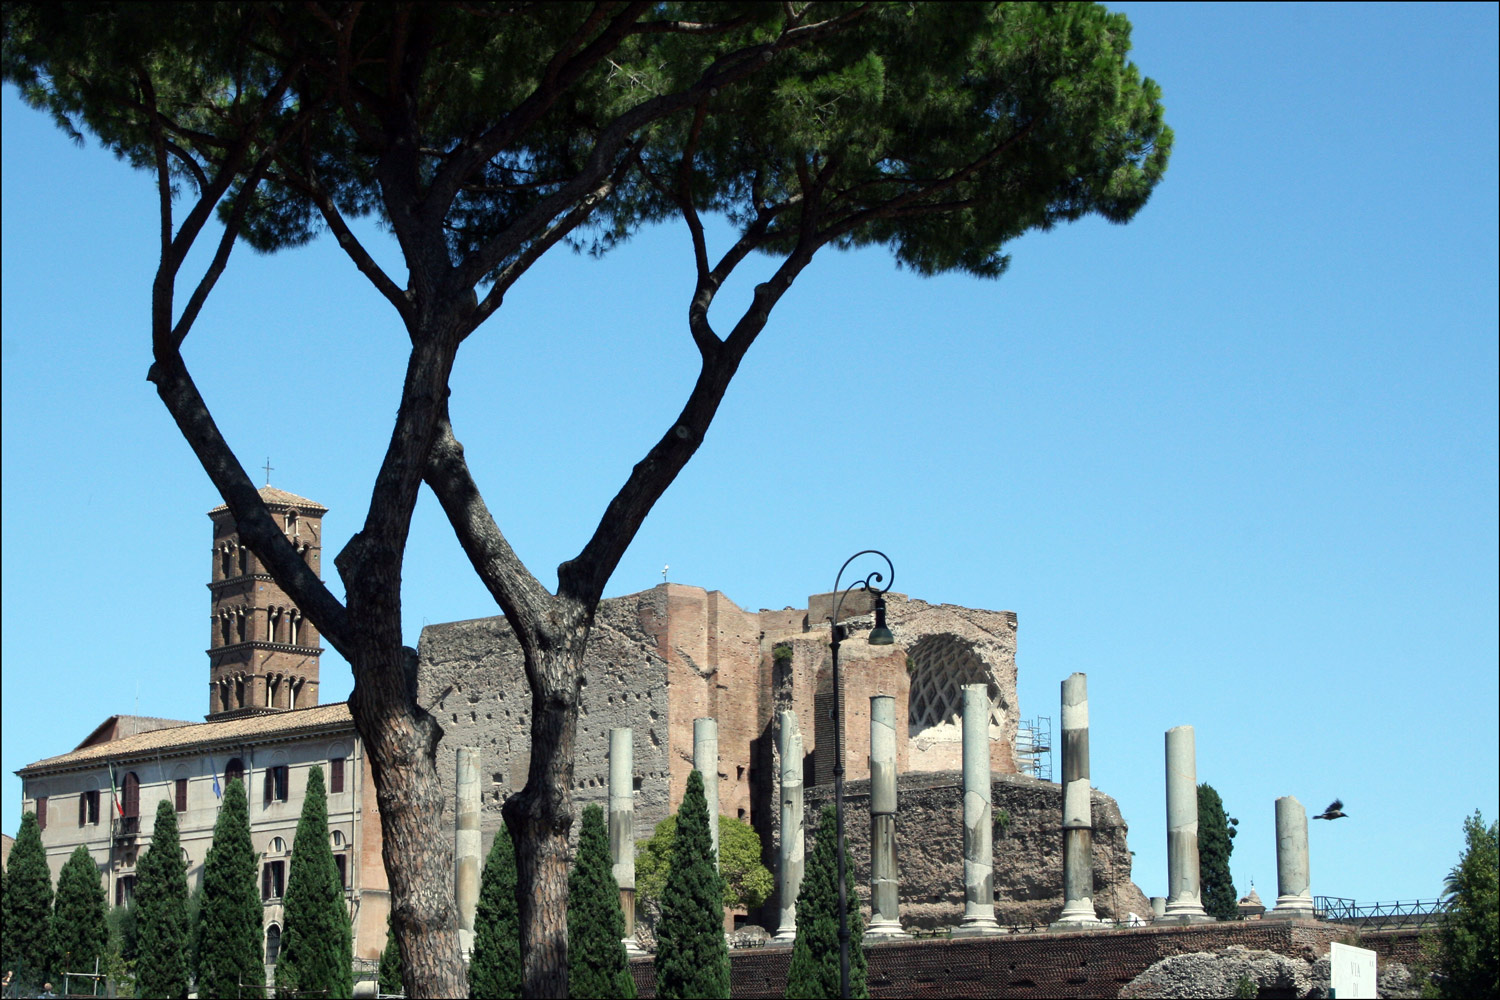 The Temple of Venus and Rome